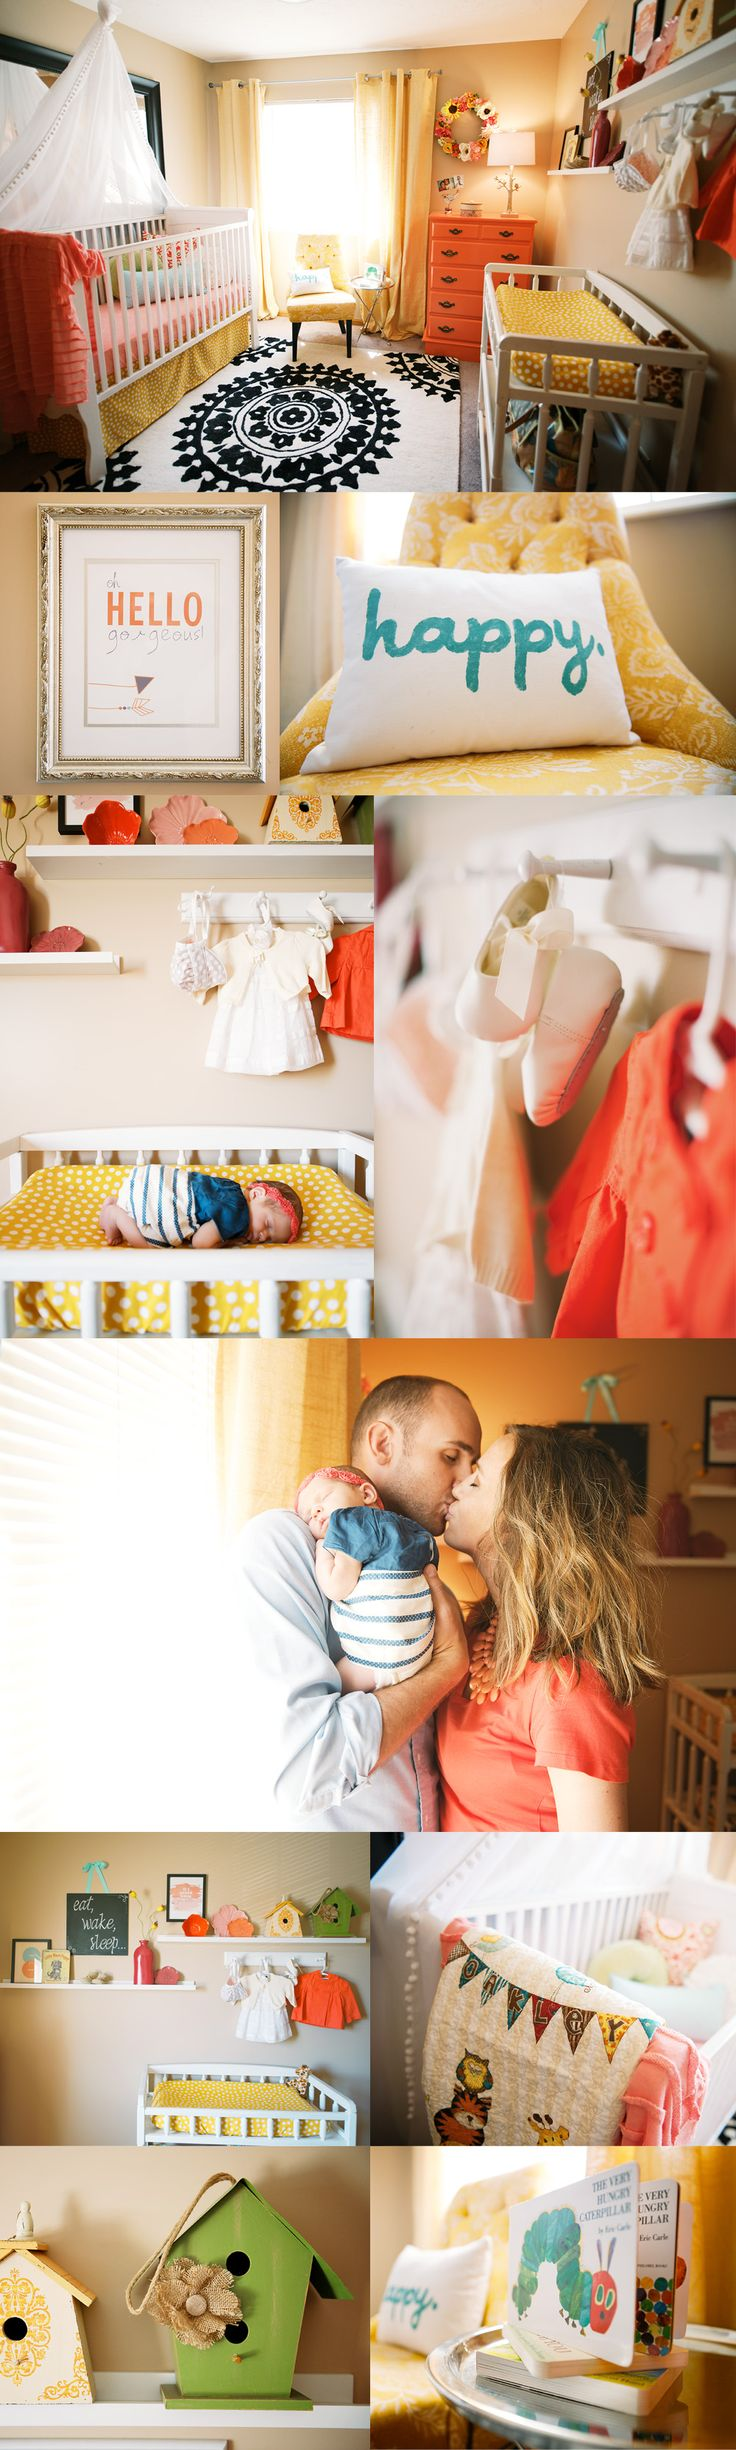 Oakley's Nursery! Photo cred: courtneyleighphoto.com & photographybystudio85.com